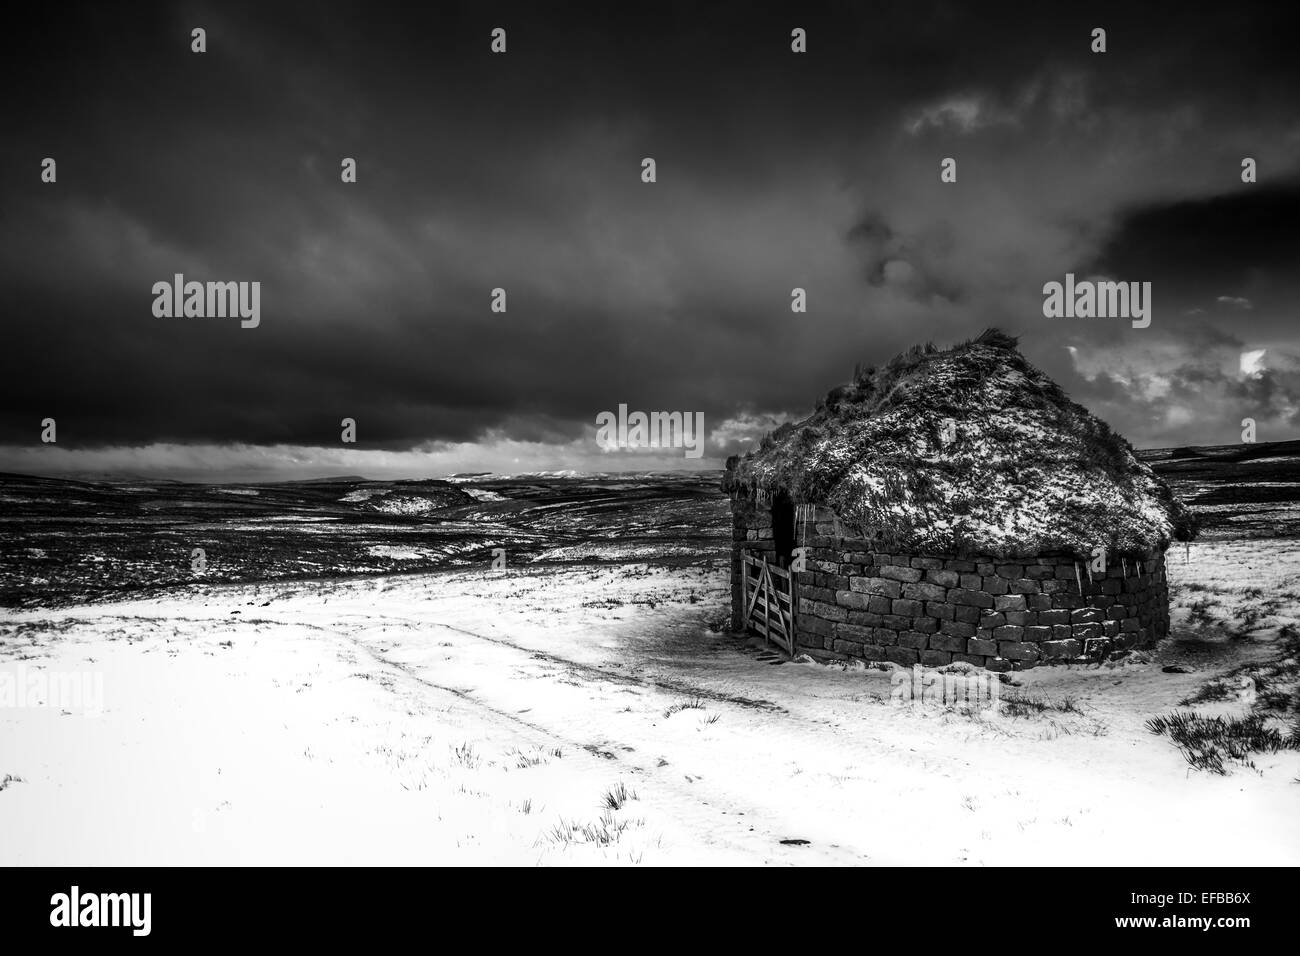 Winter ramble - Barn scene on a snowy Embsay Moor in the Yorkshire Dales, England, UK - Stock Image